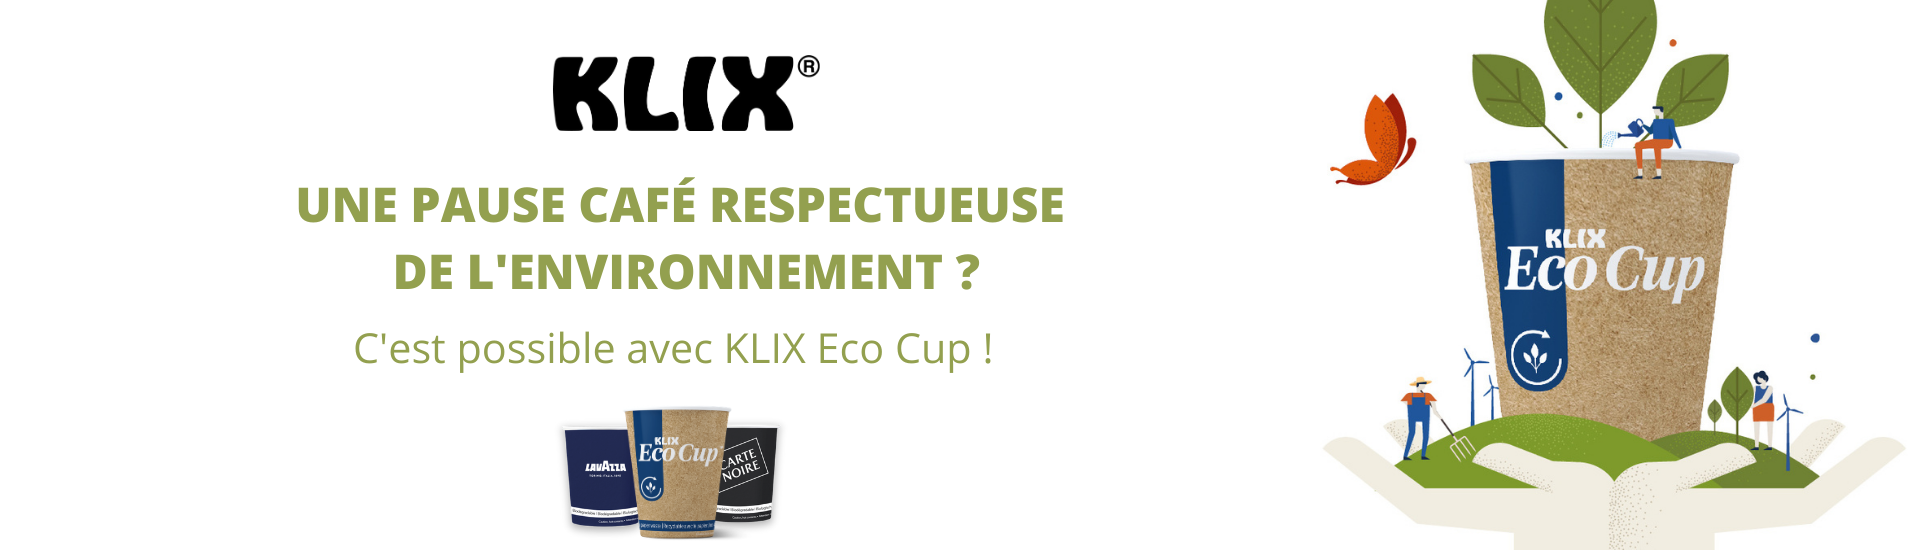 Pause respectueuse